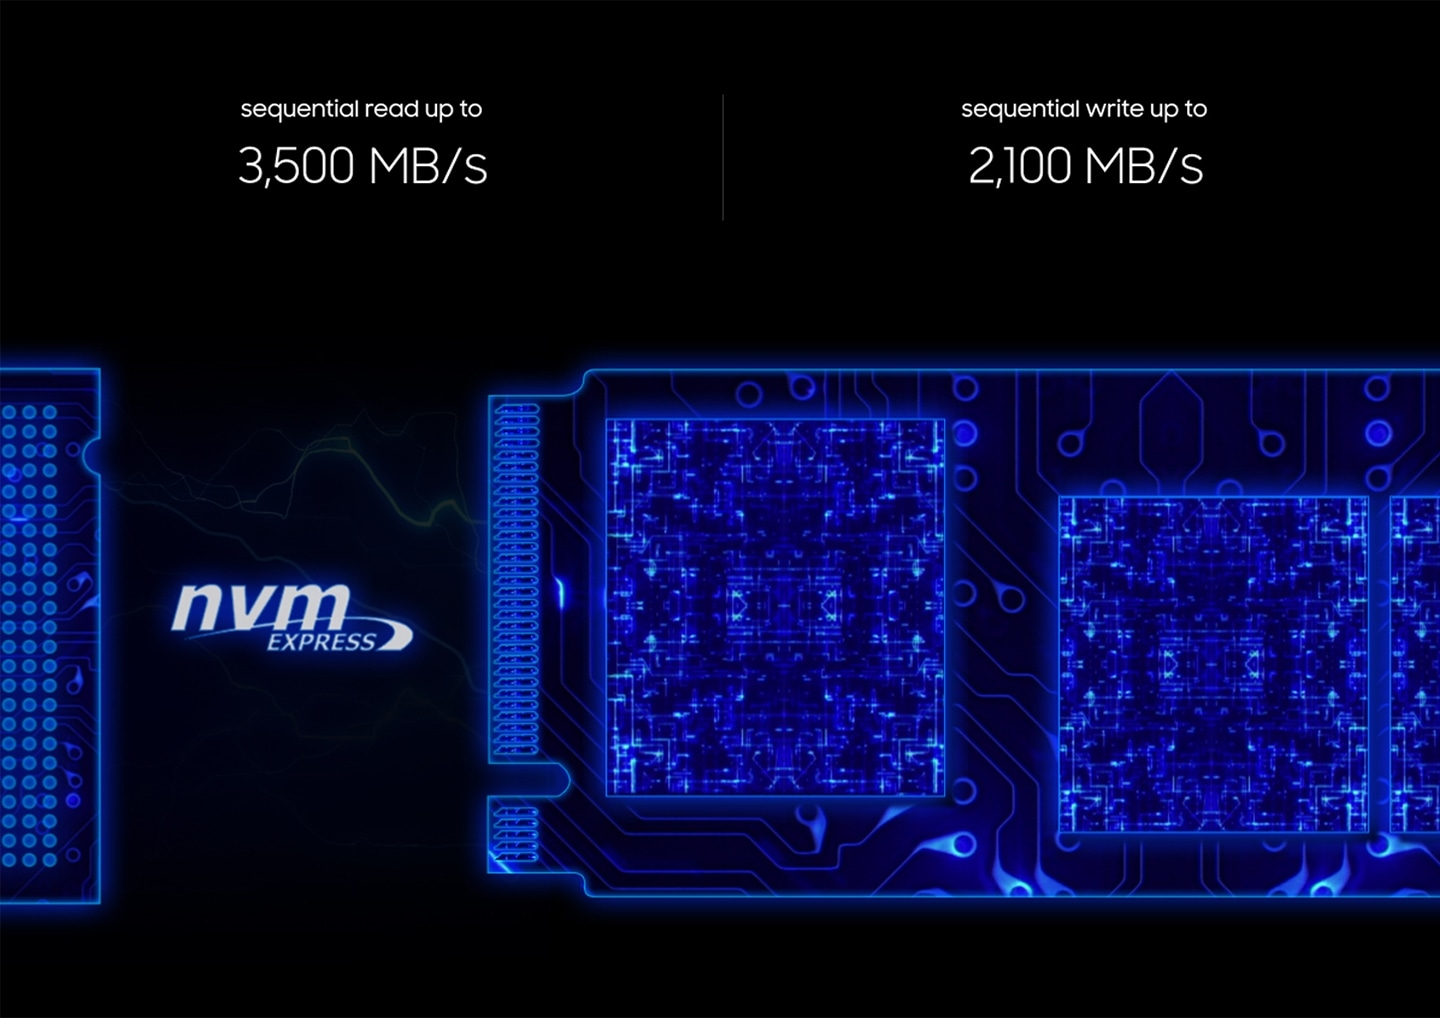 samsung semiconductor 960 pro Experience next-gen performance